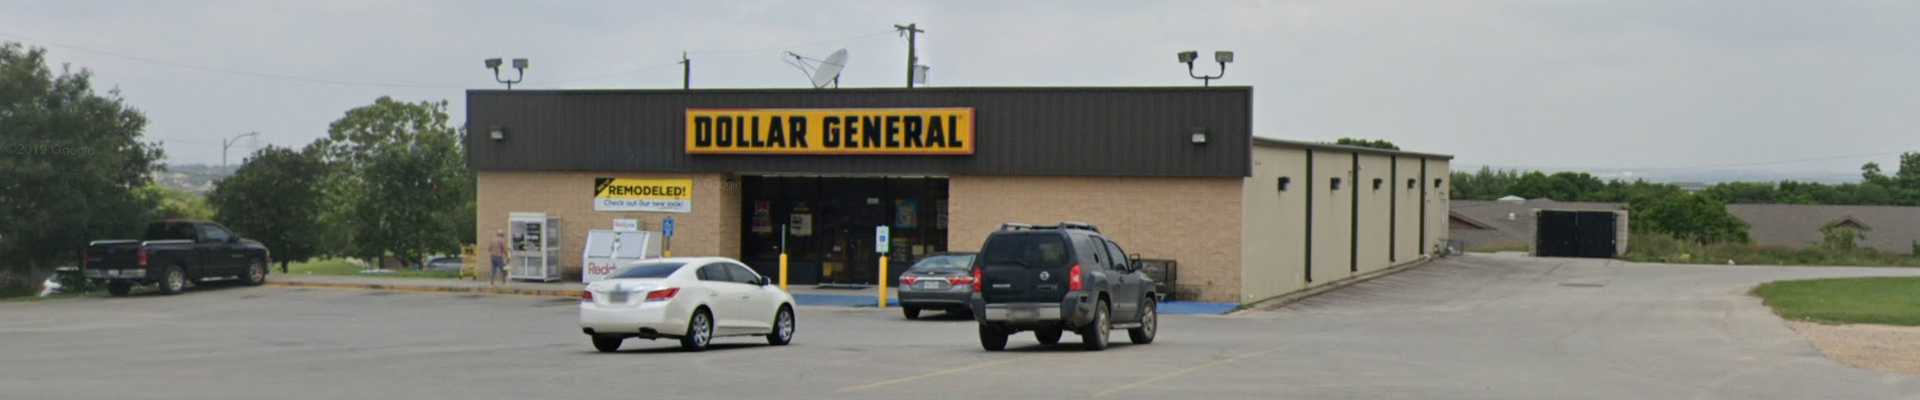 Dollar General (9845) – San Antonio, Texas